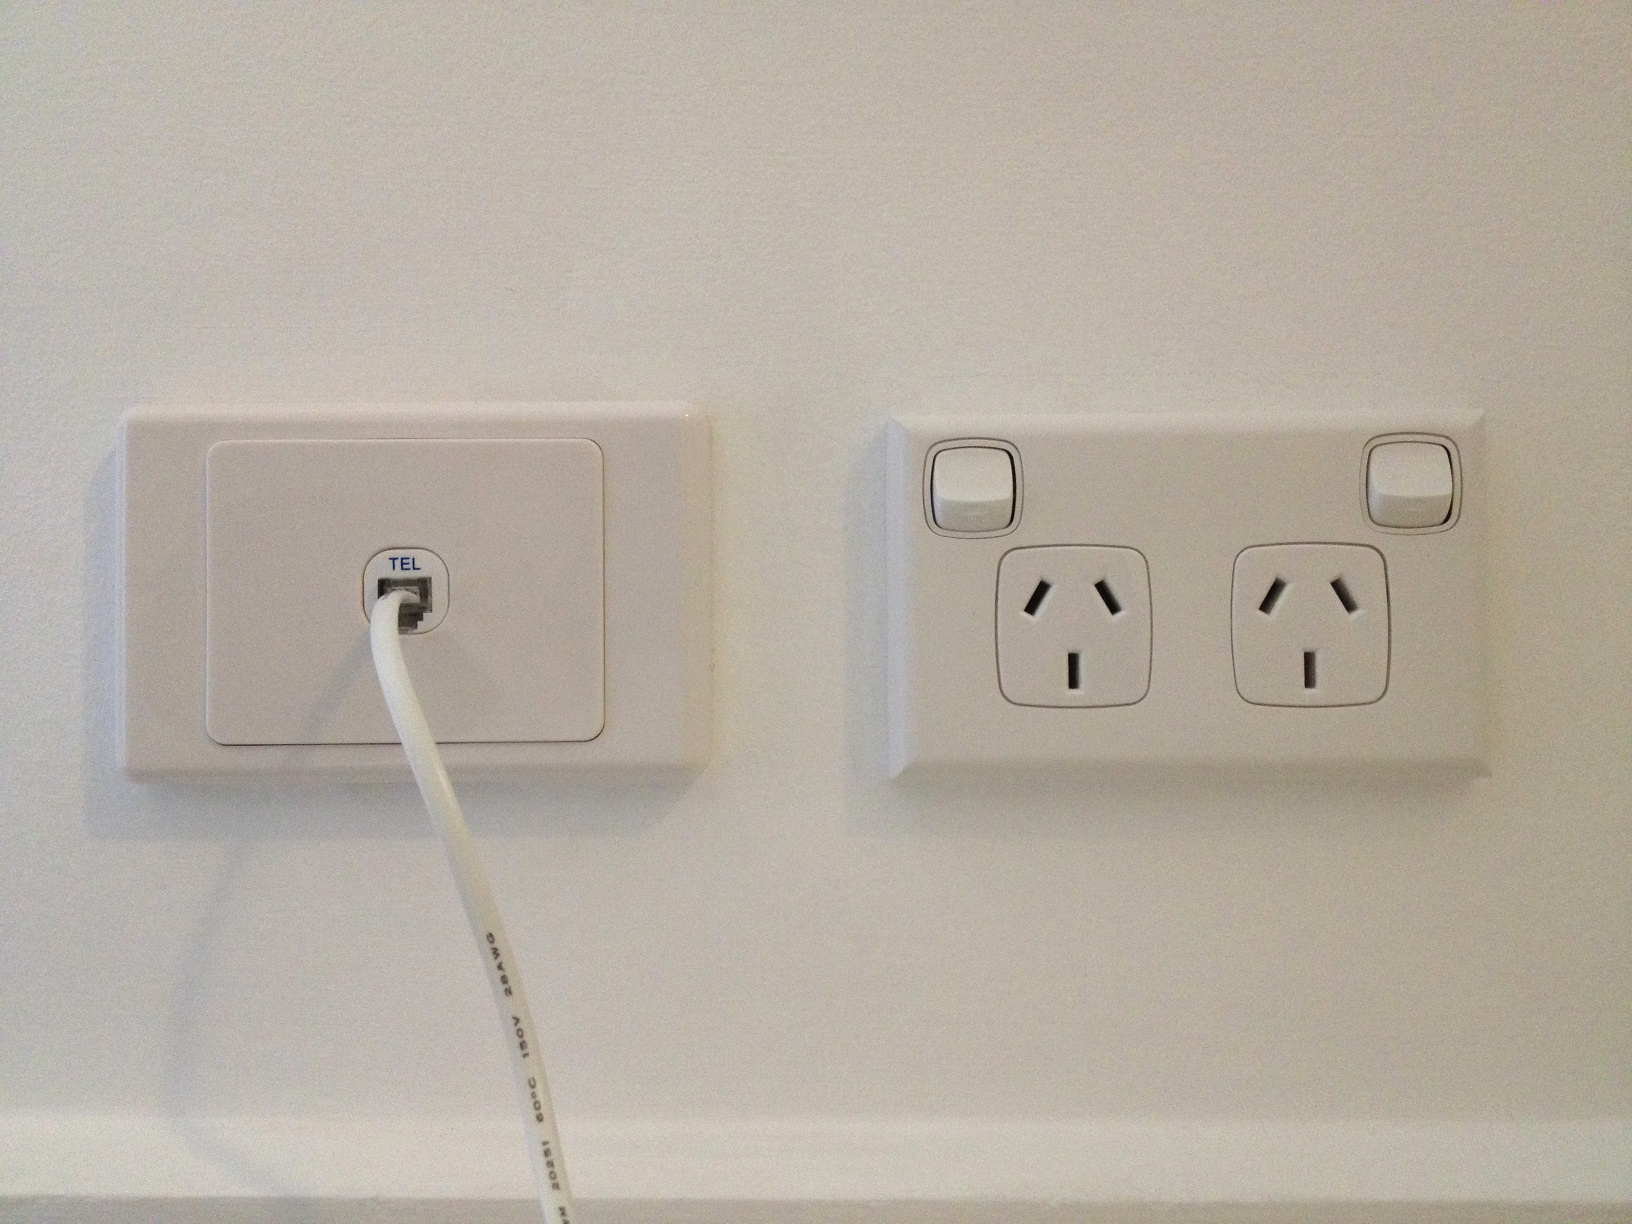 phone socket upgraded1?w=640&h=480 upgrading a 600 series phone socket to rj11 tp69 telstra wall plate wiring diagram at crackthecode.co